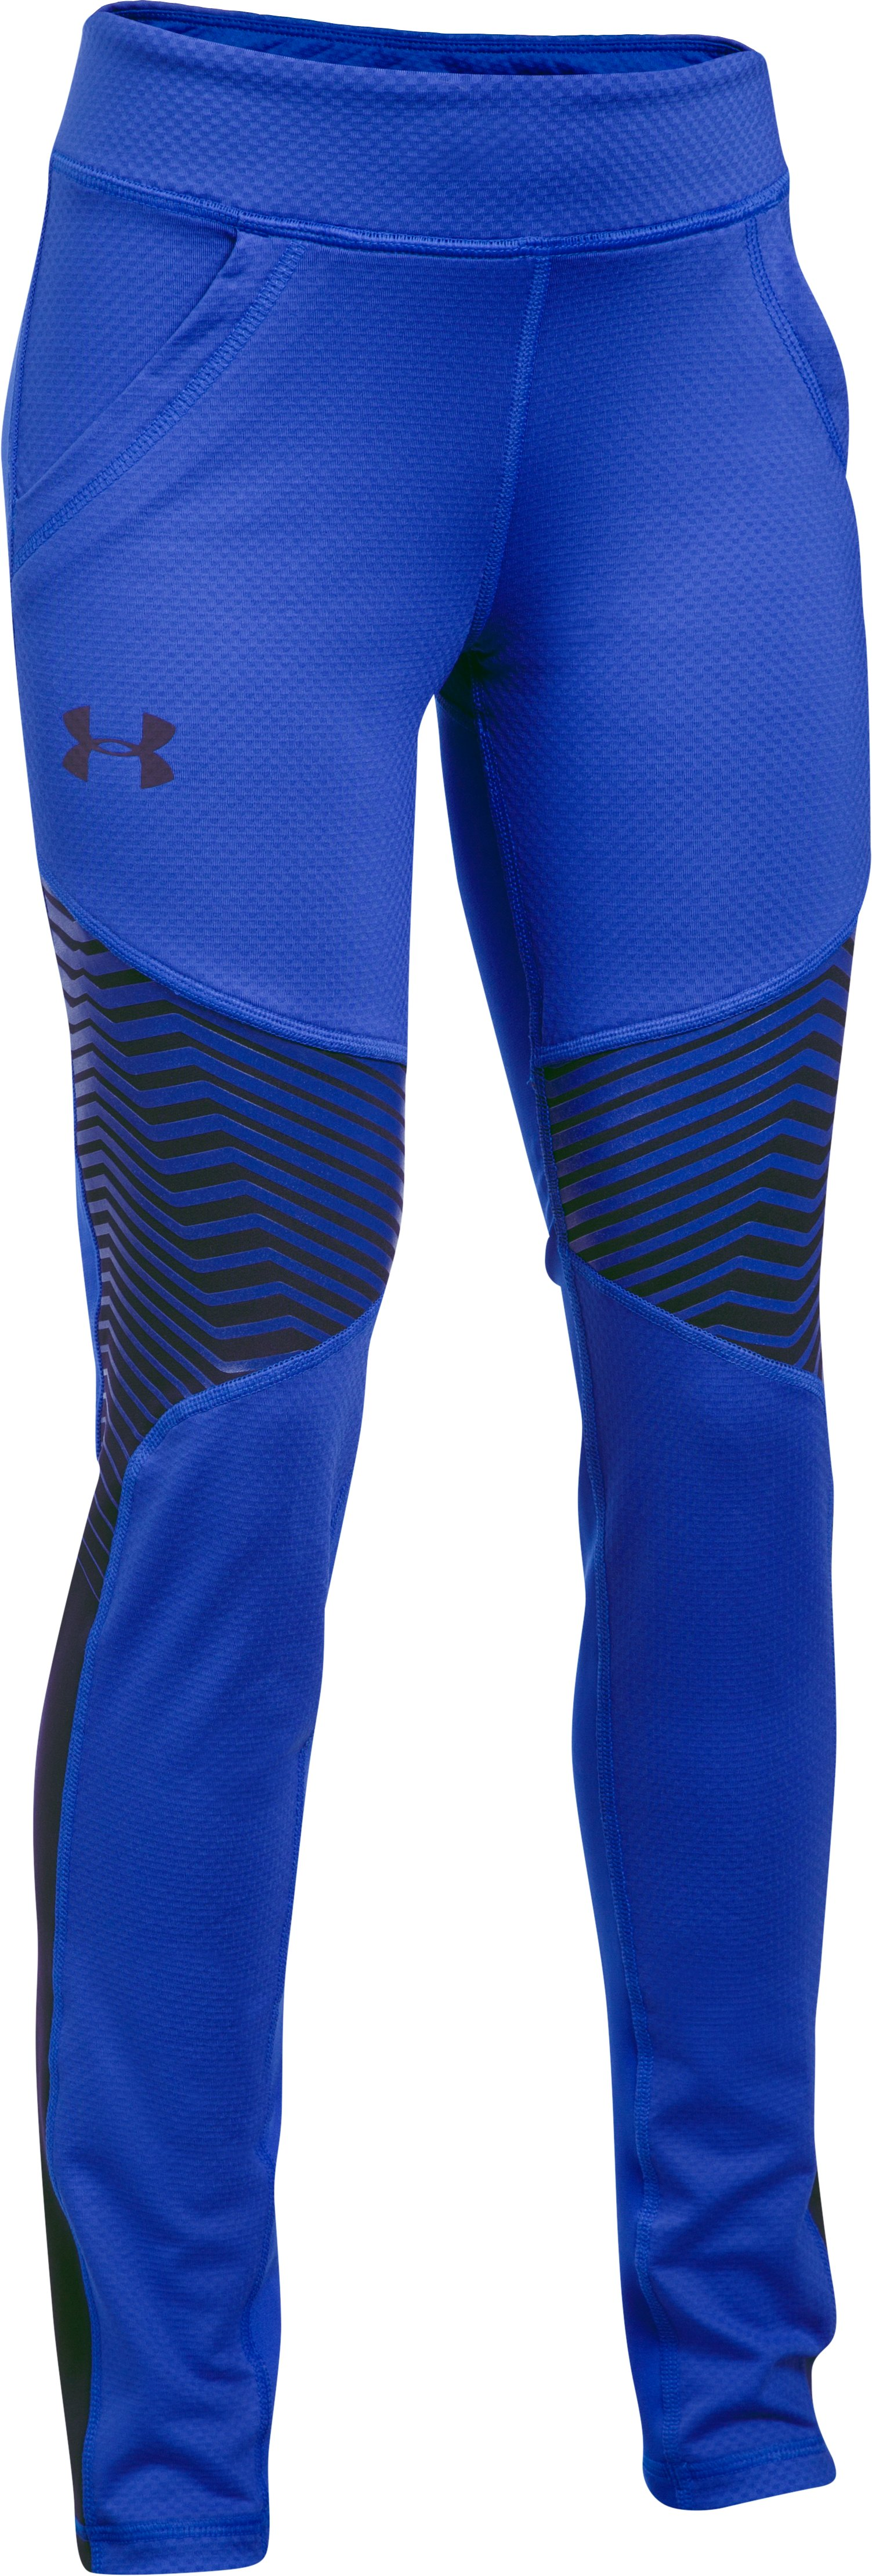 Girls' ColdGear® Reactor Leggings, LAPIS BLUE